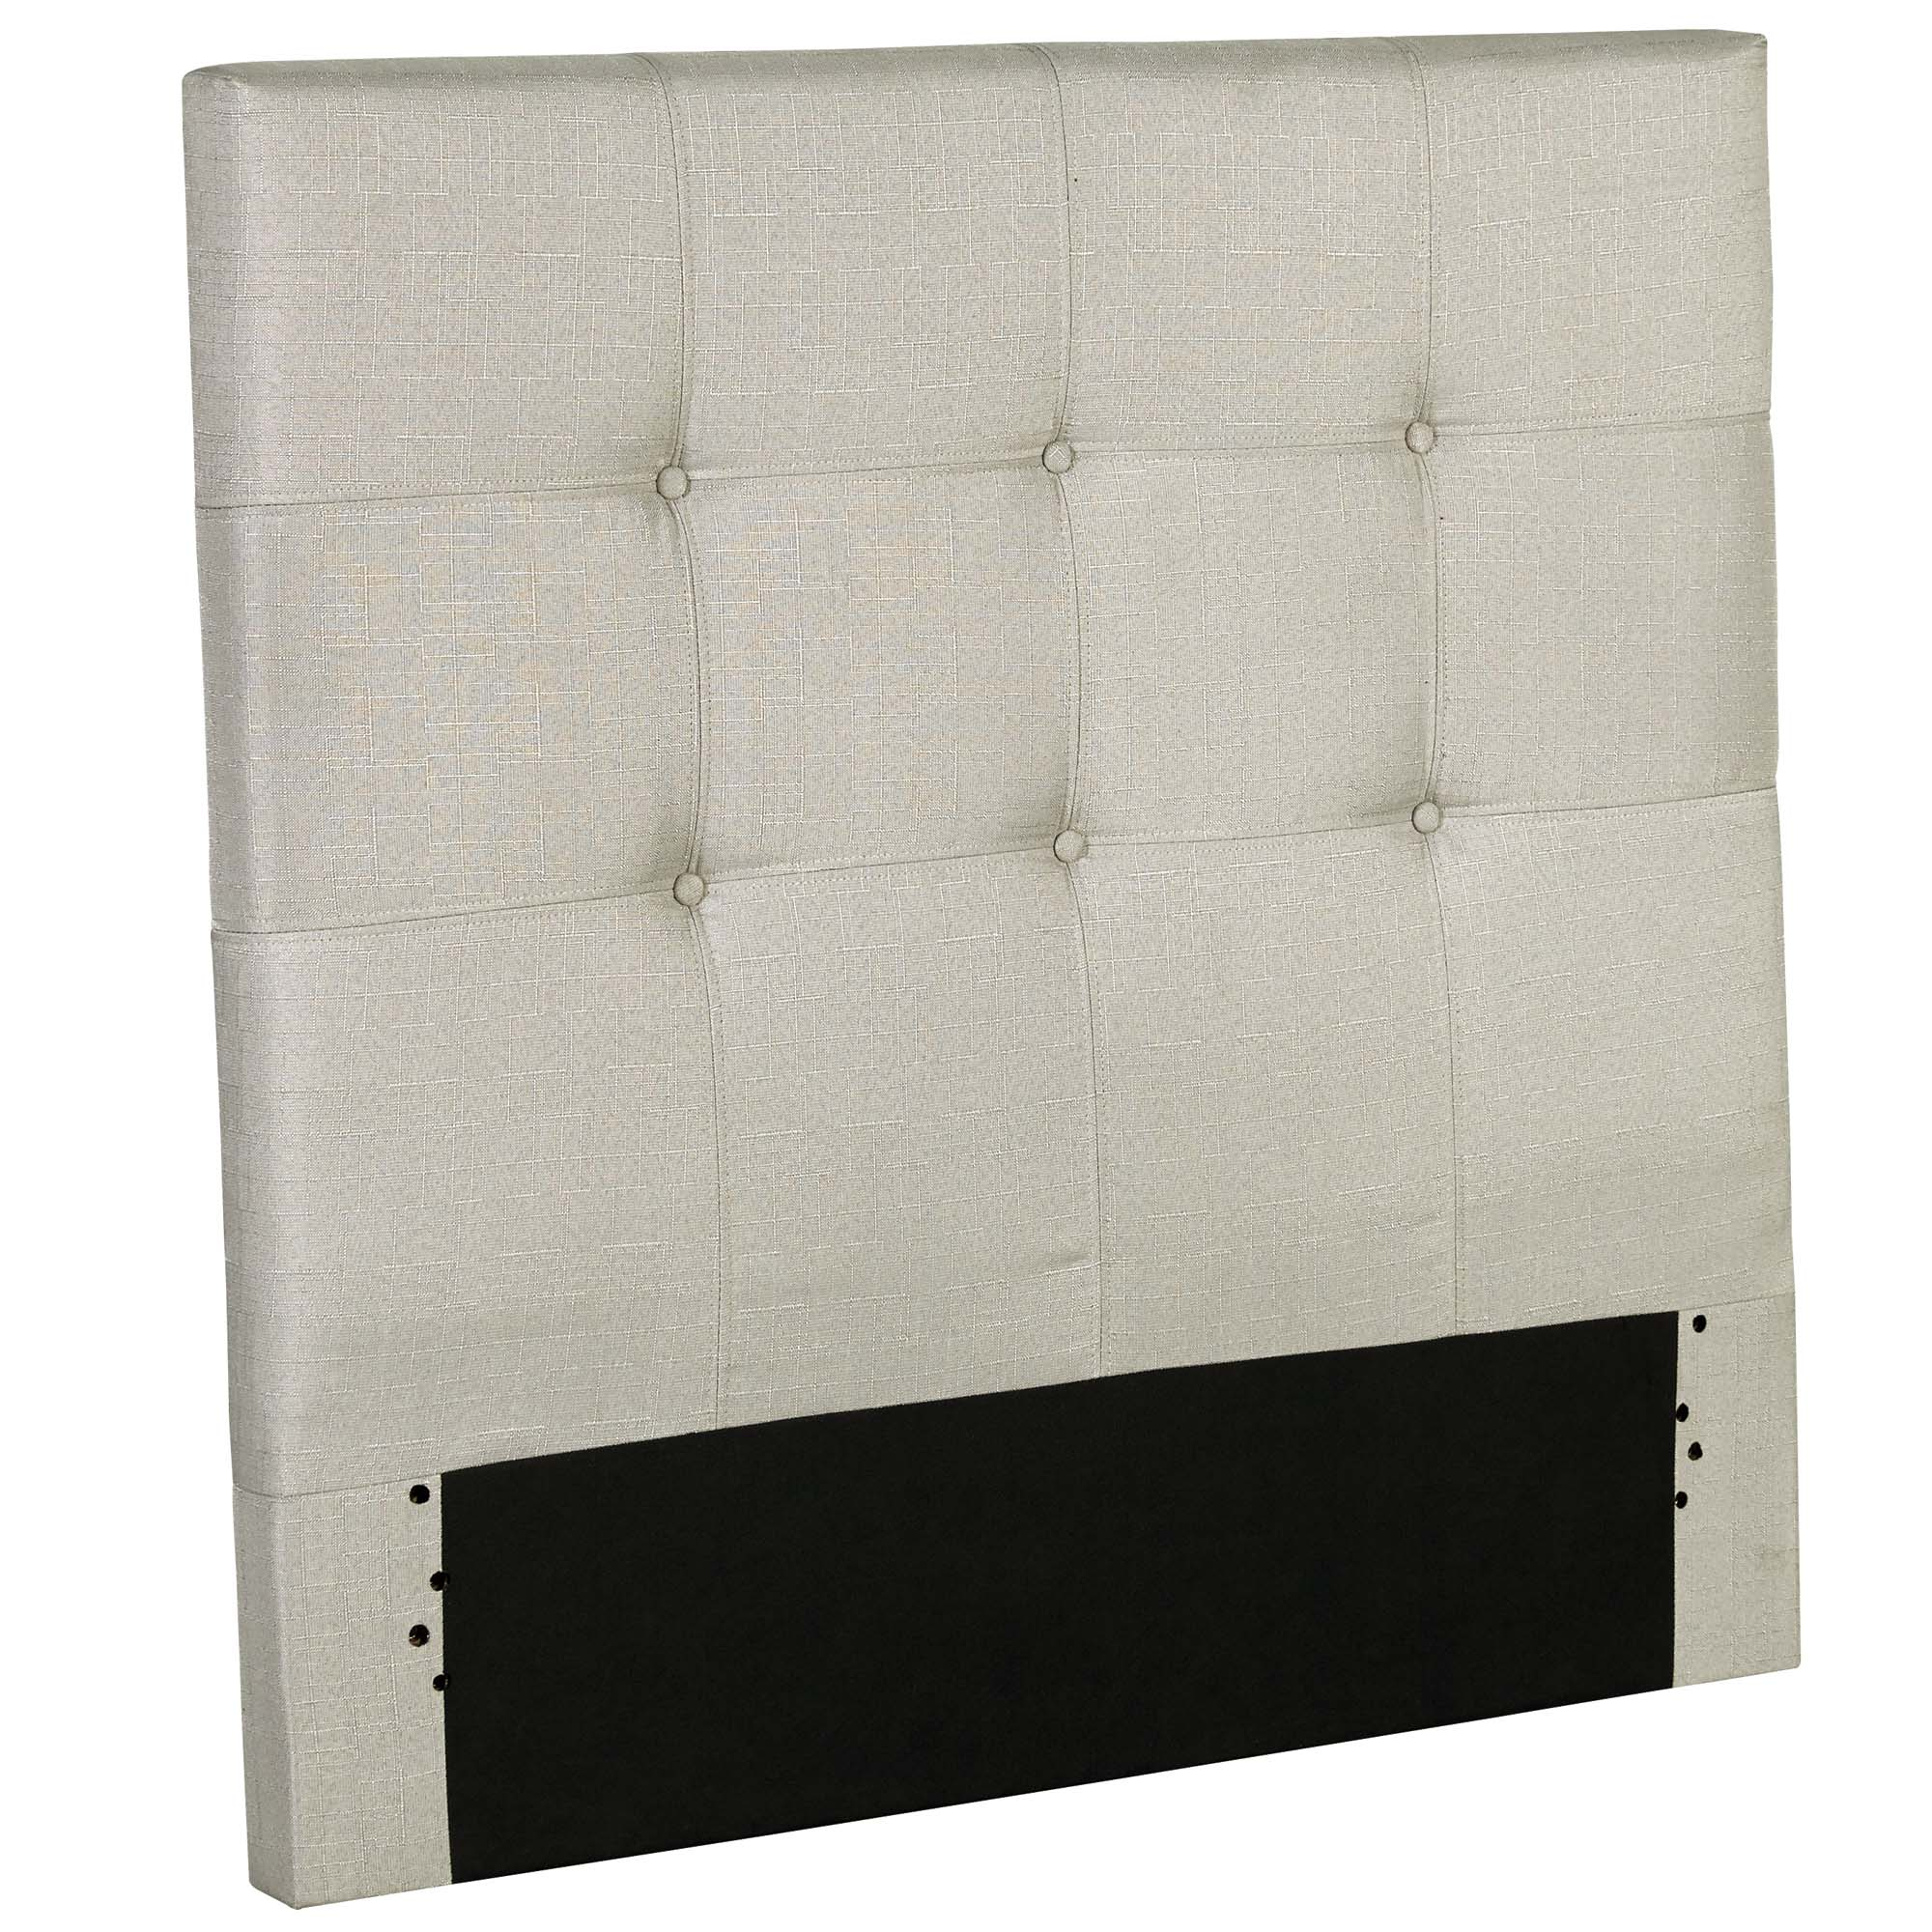 Henley Upholstered Kids Headboard Panel with Button Tufted Design, Cloud Grey Finish, Twin